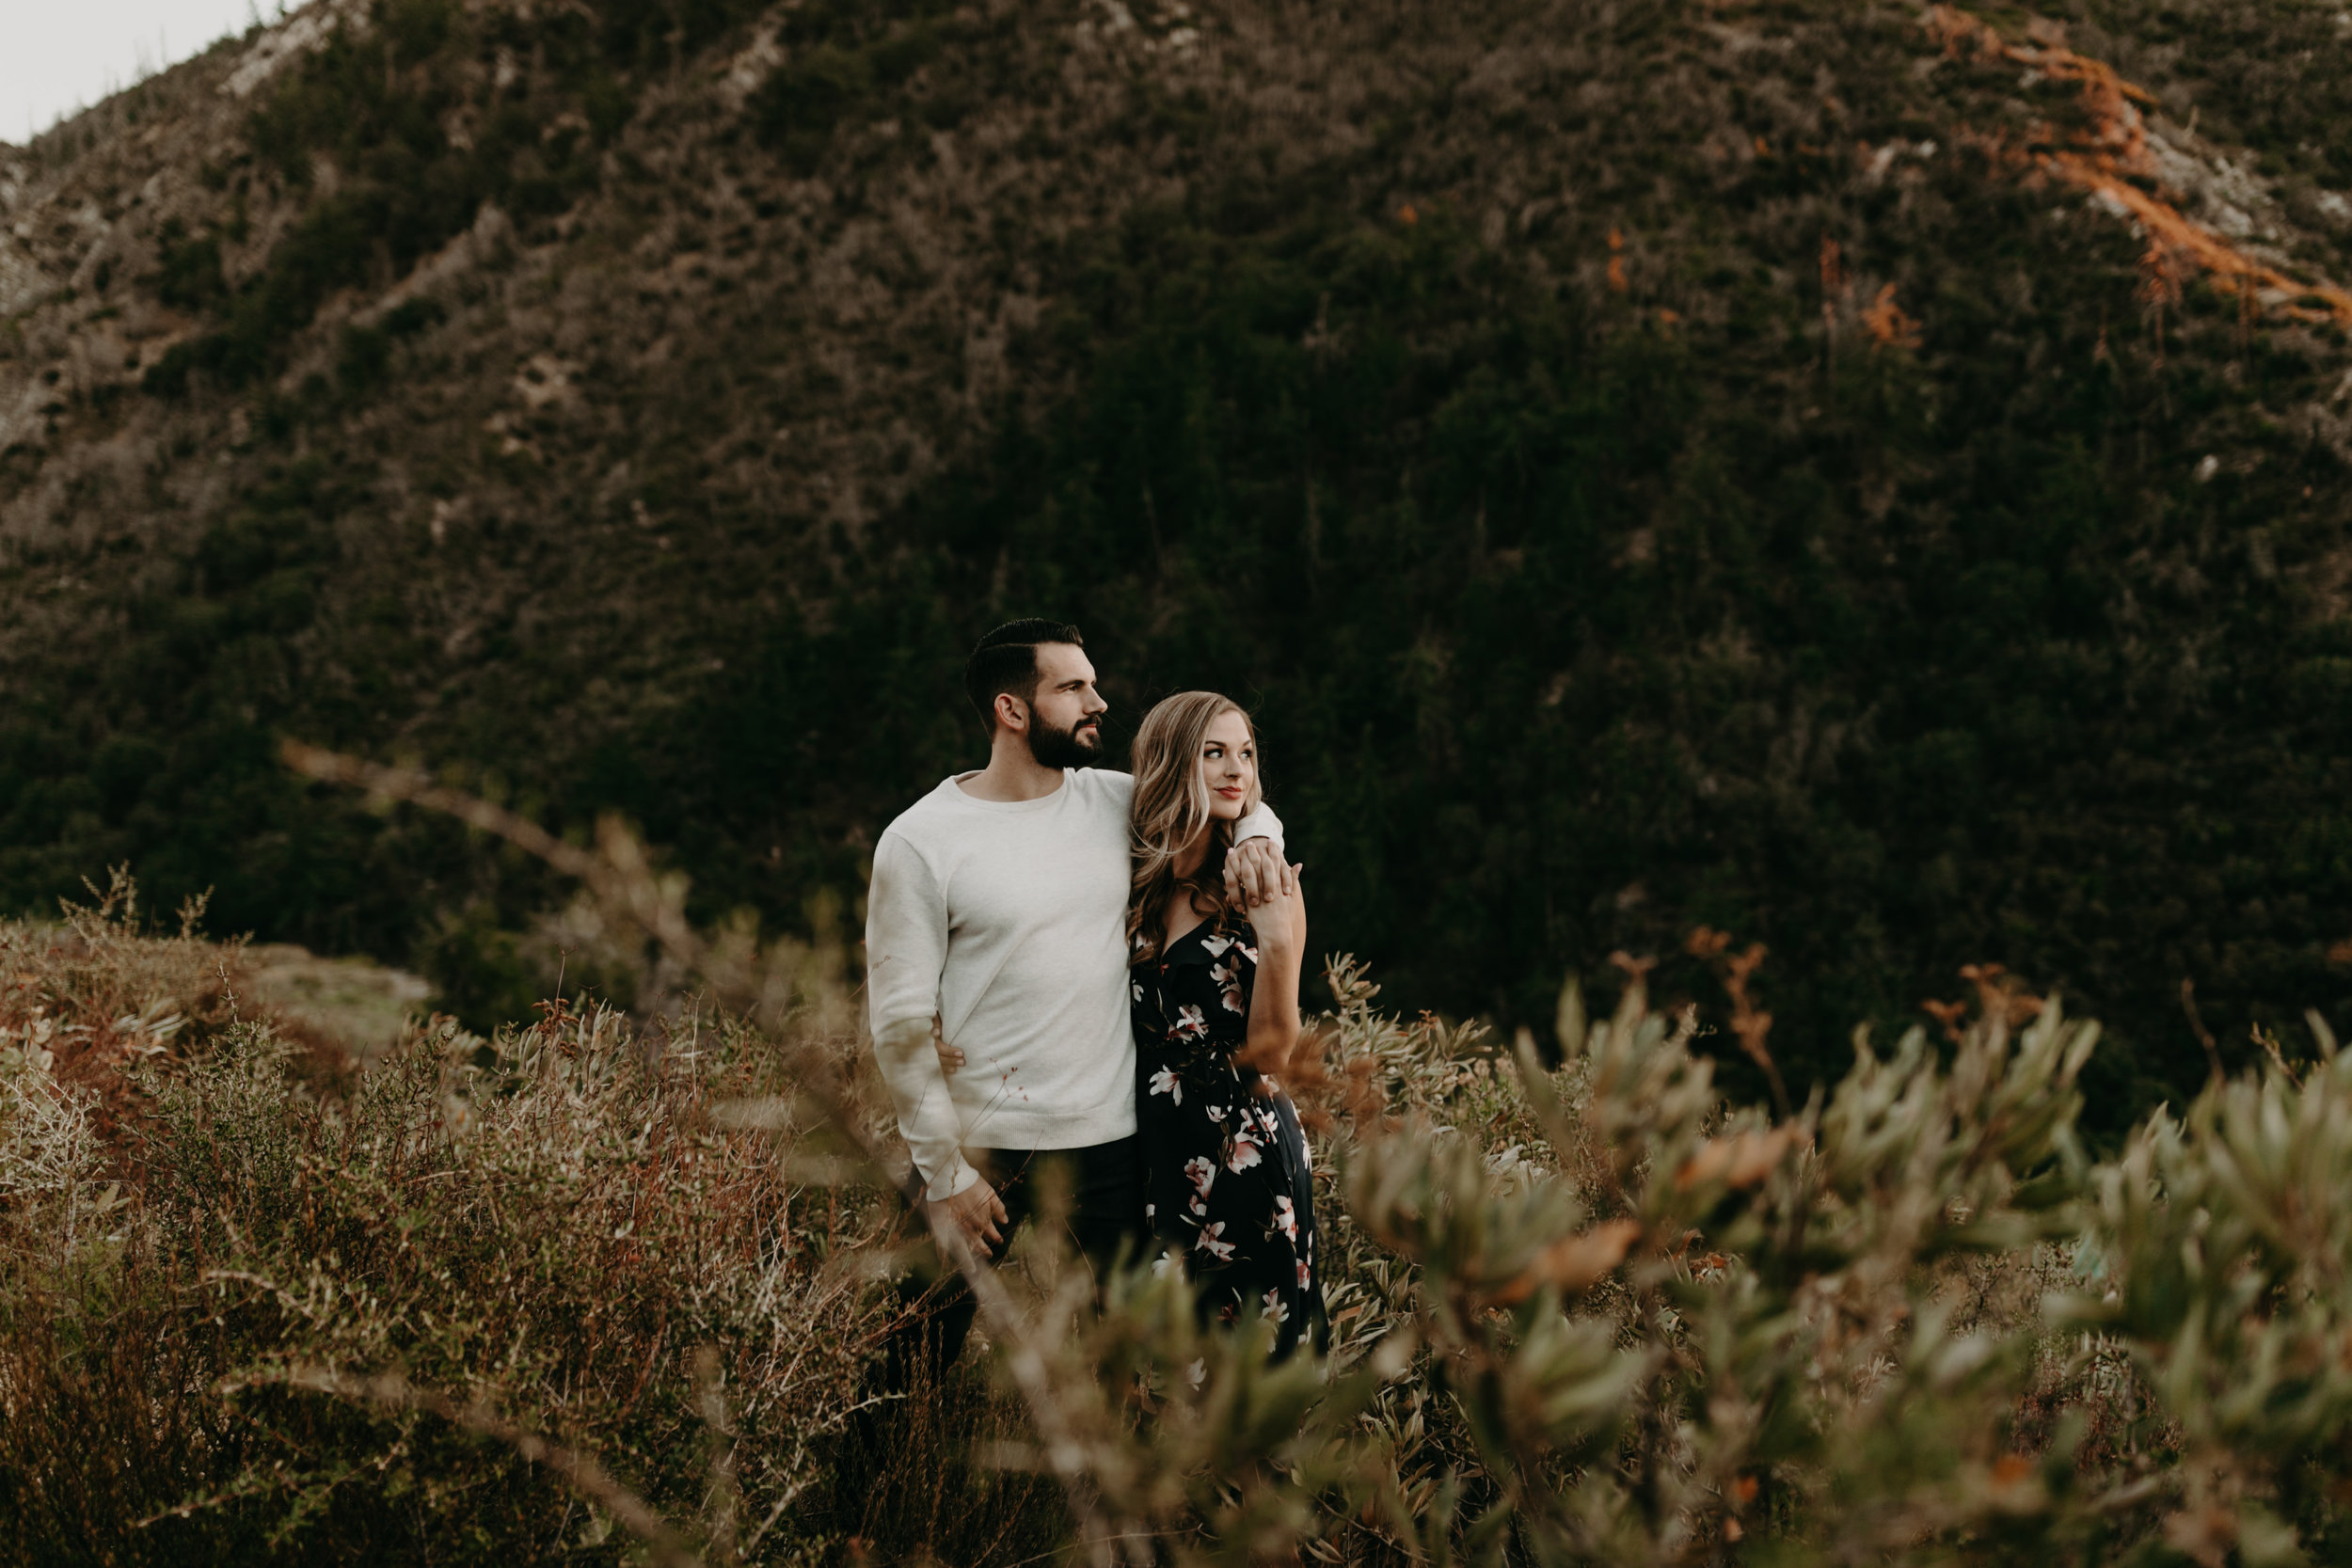 Los Angeles Engagement Session Matt & Shayna Emily Magers Photography-323.jpg